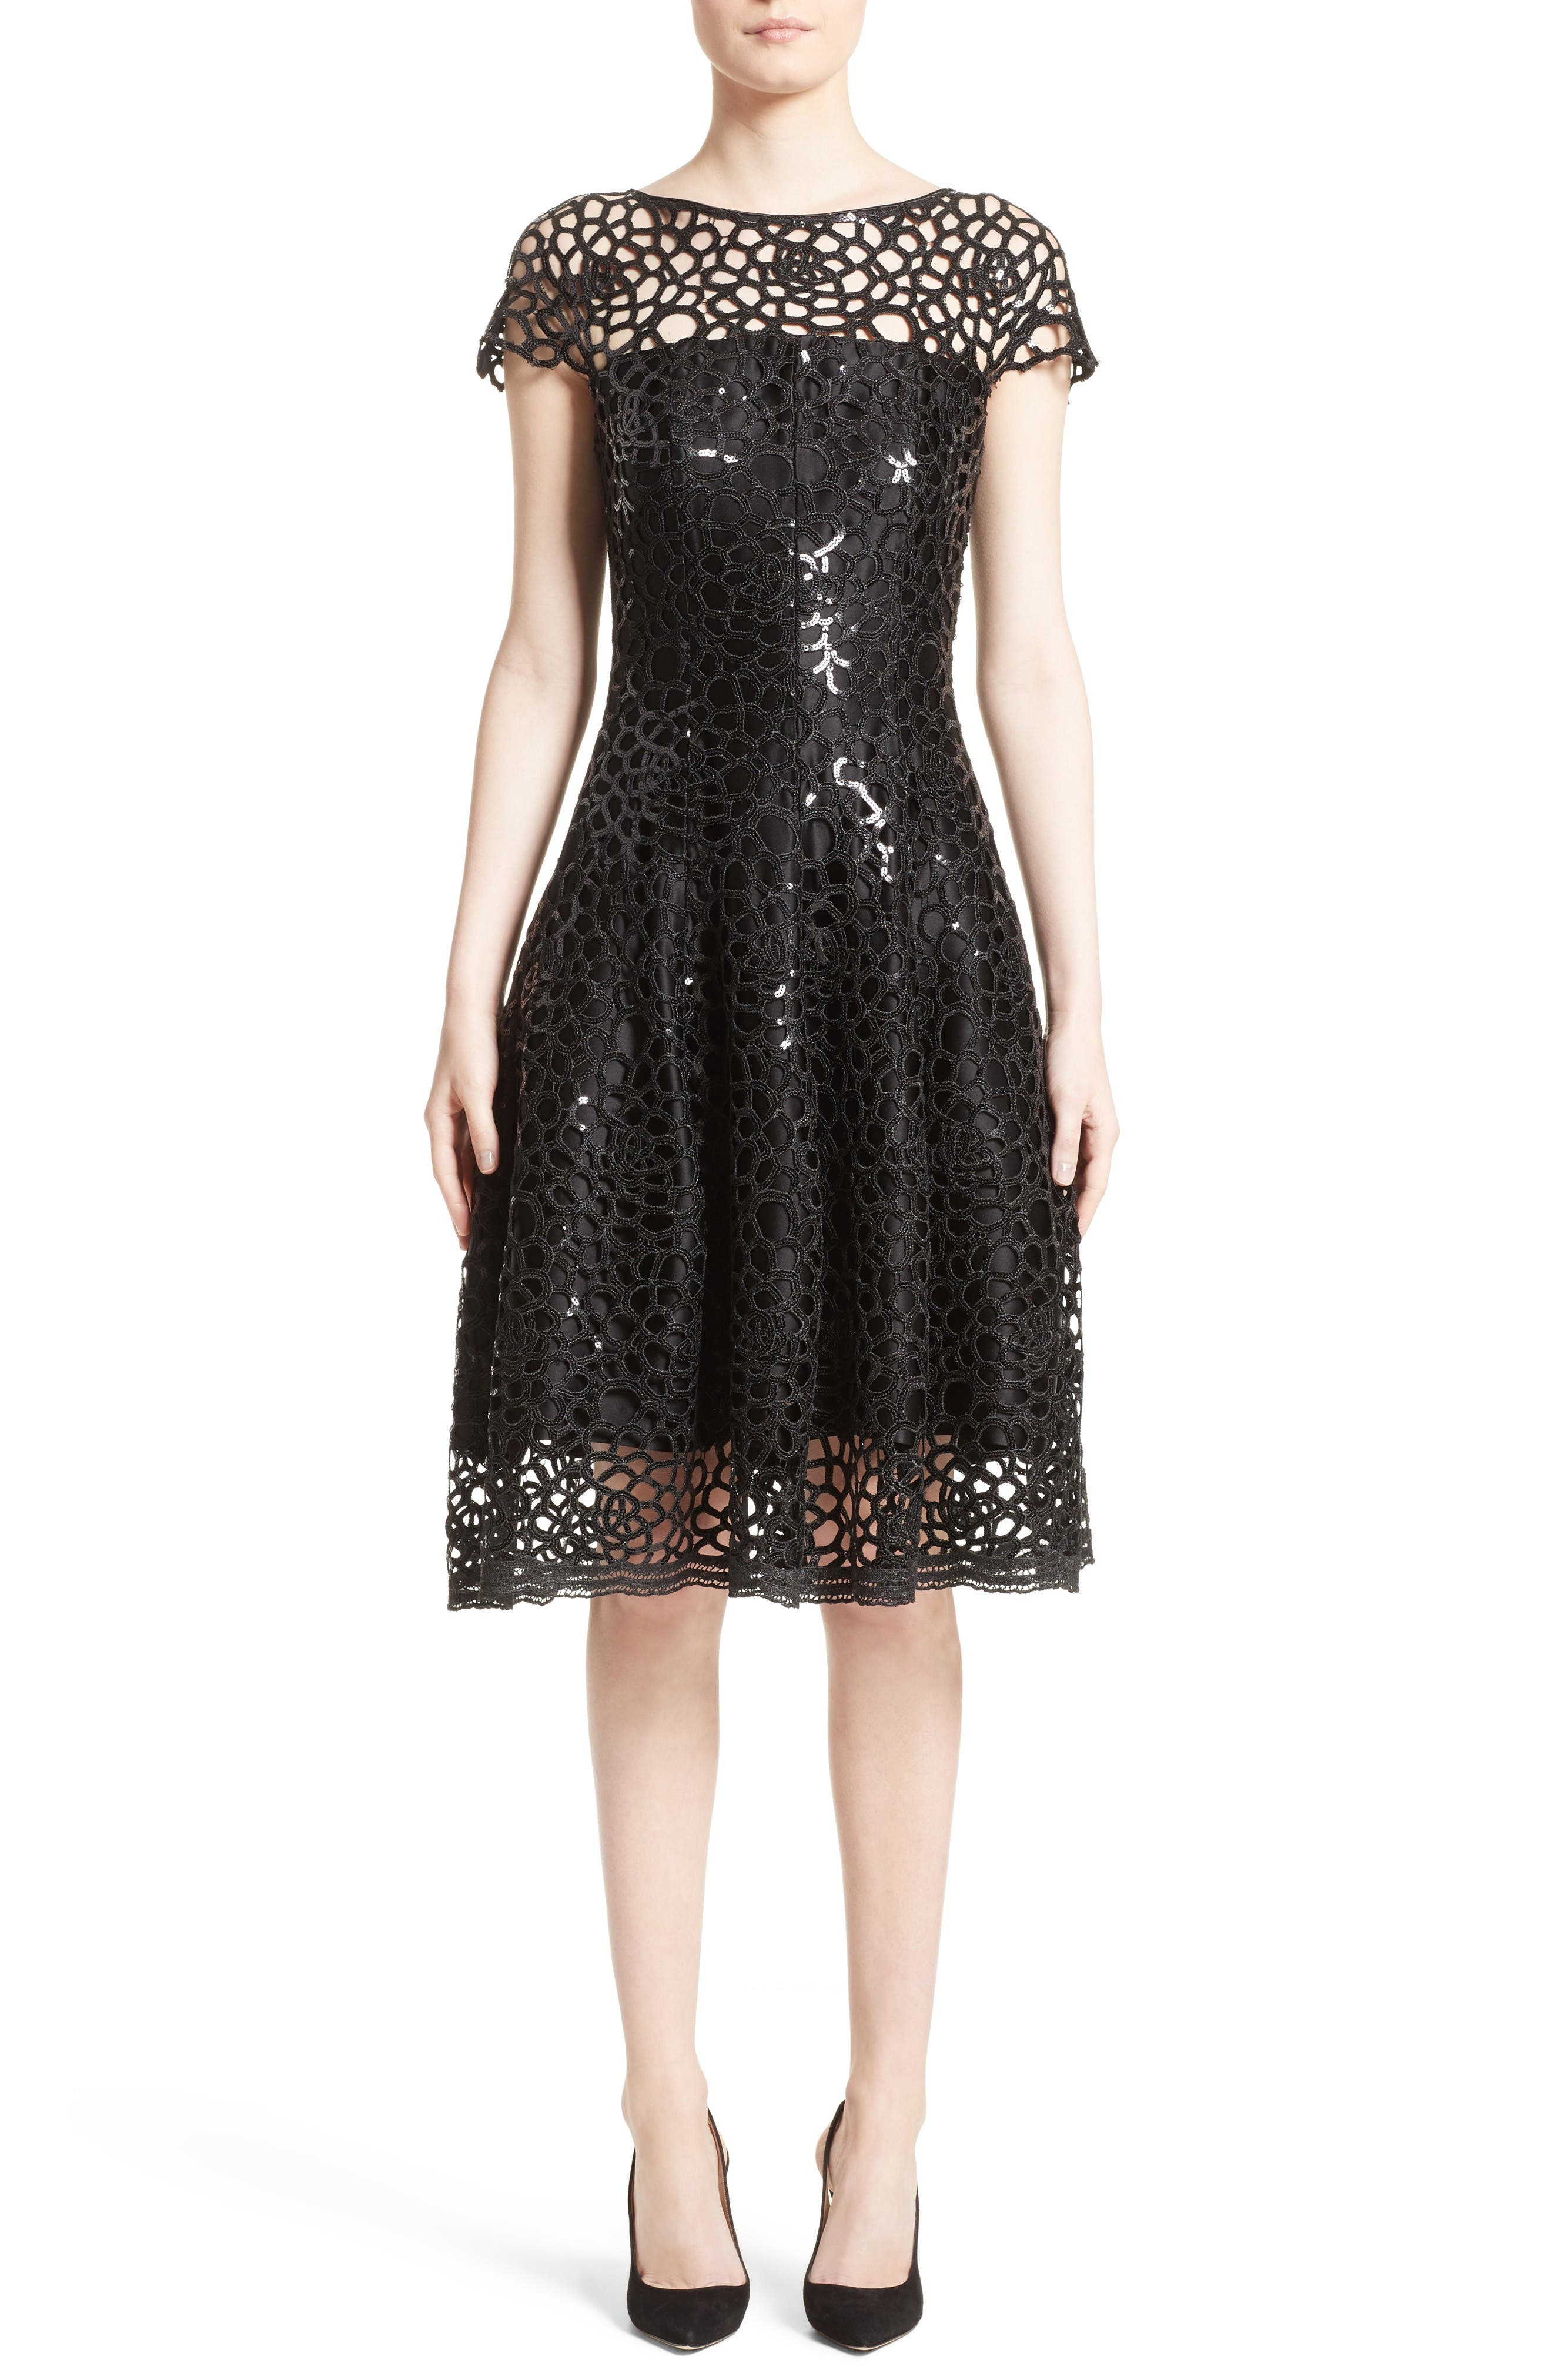 Main Image - Talbot Runhof Sequin Cutout Fit & Flare Dress